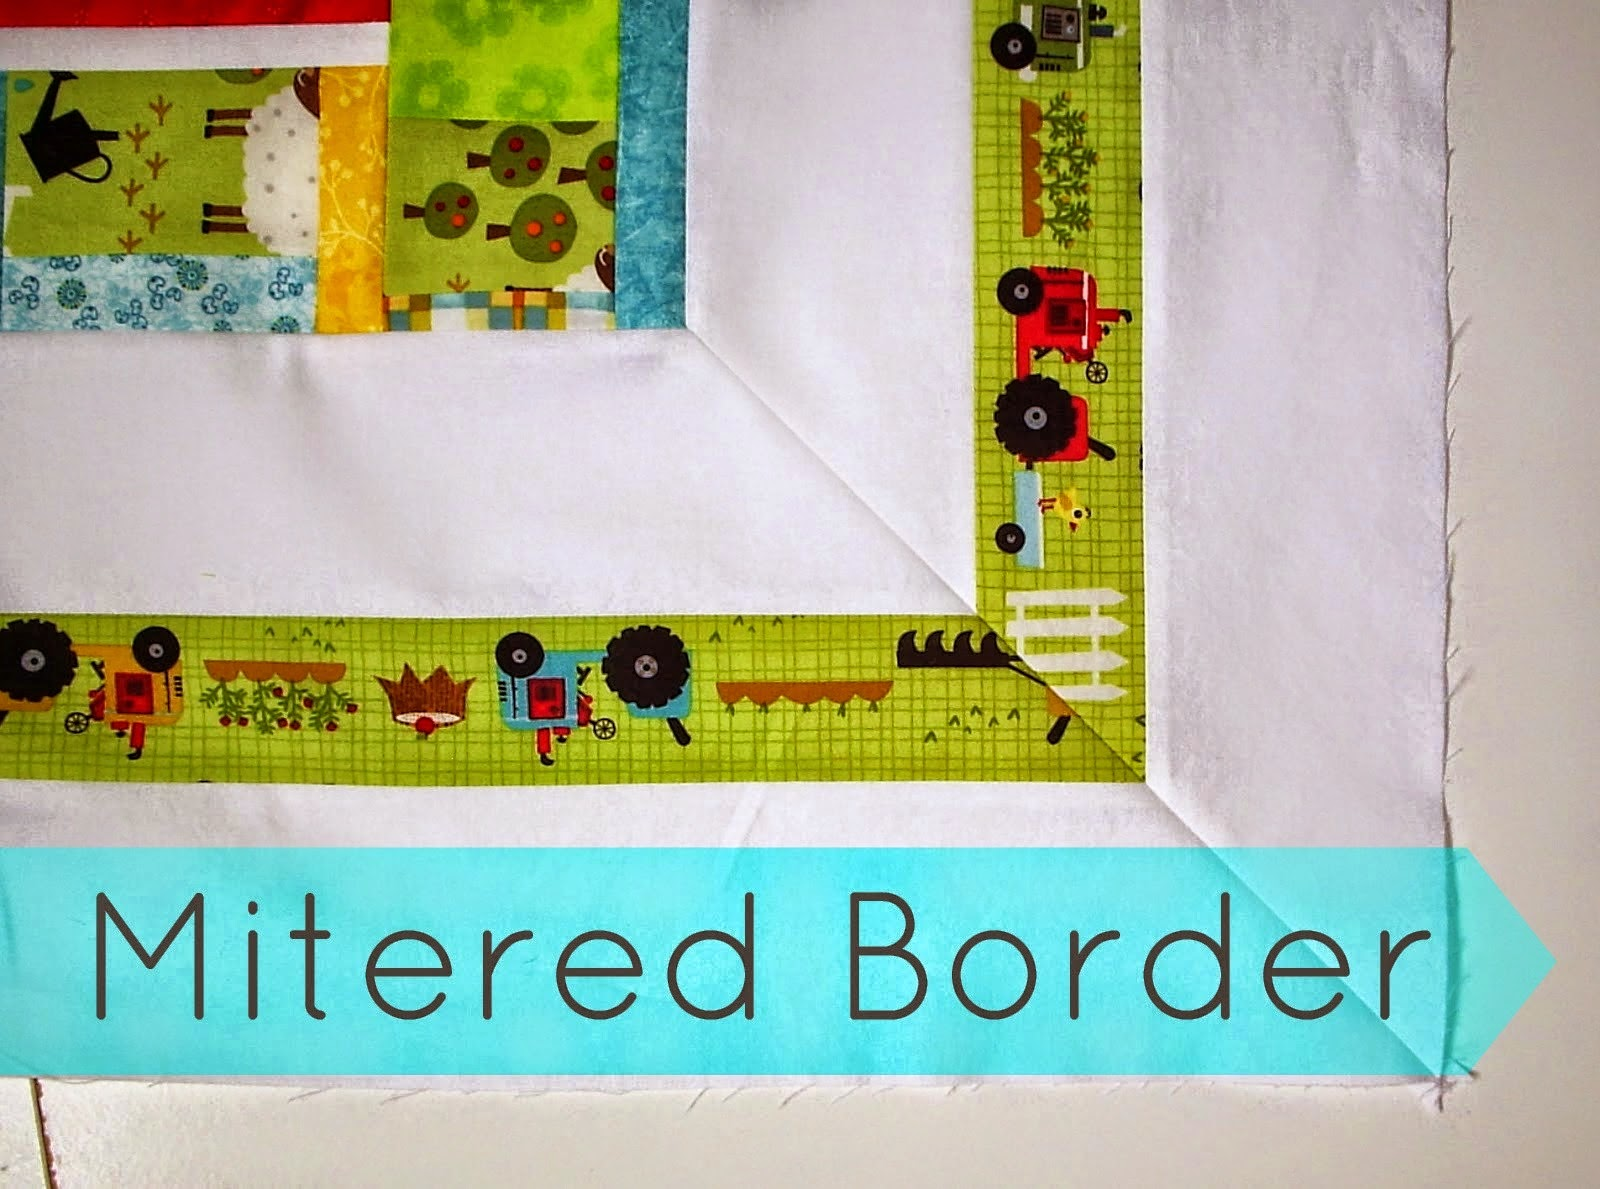 http://sewfreshquilts.blogspot.ca/2013/10/mitered-border-quilt-tutorial.html